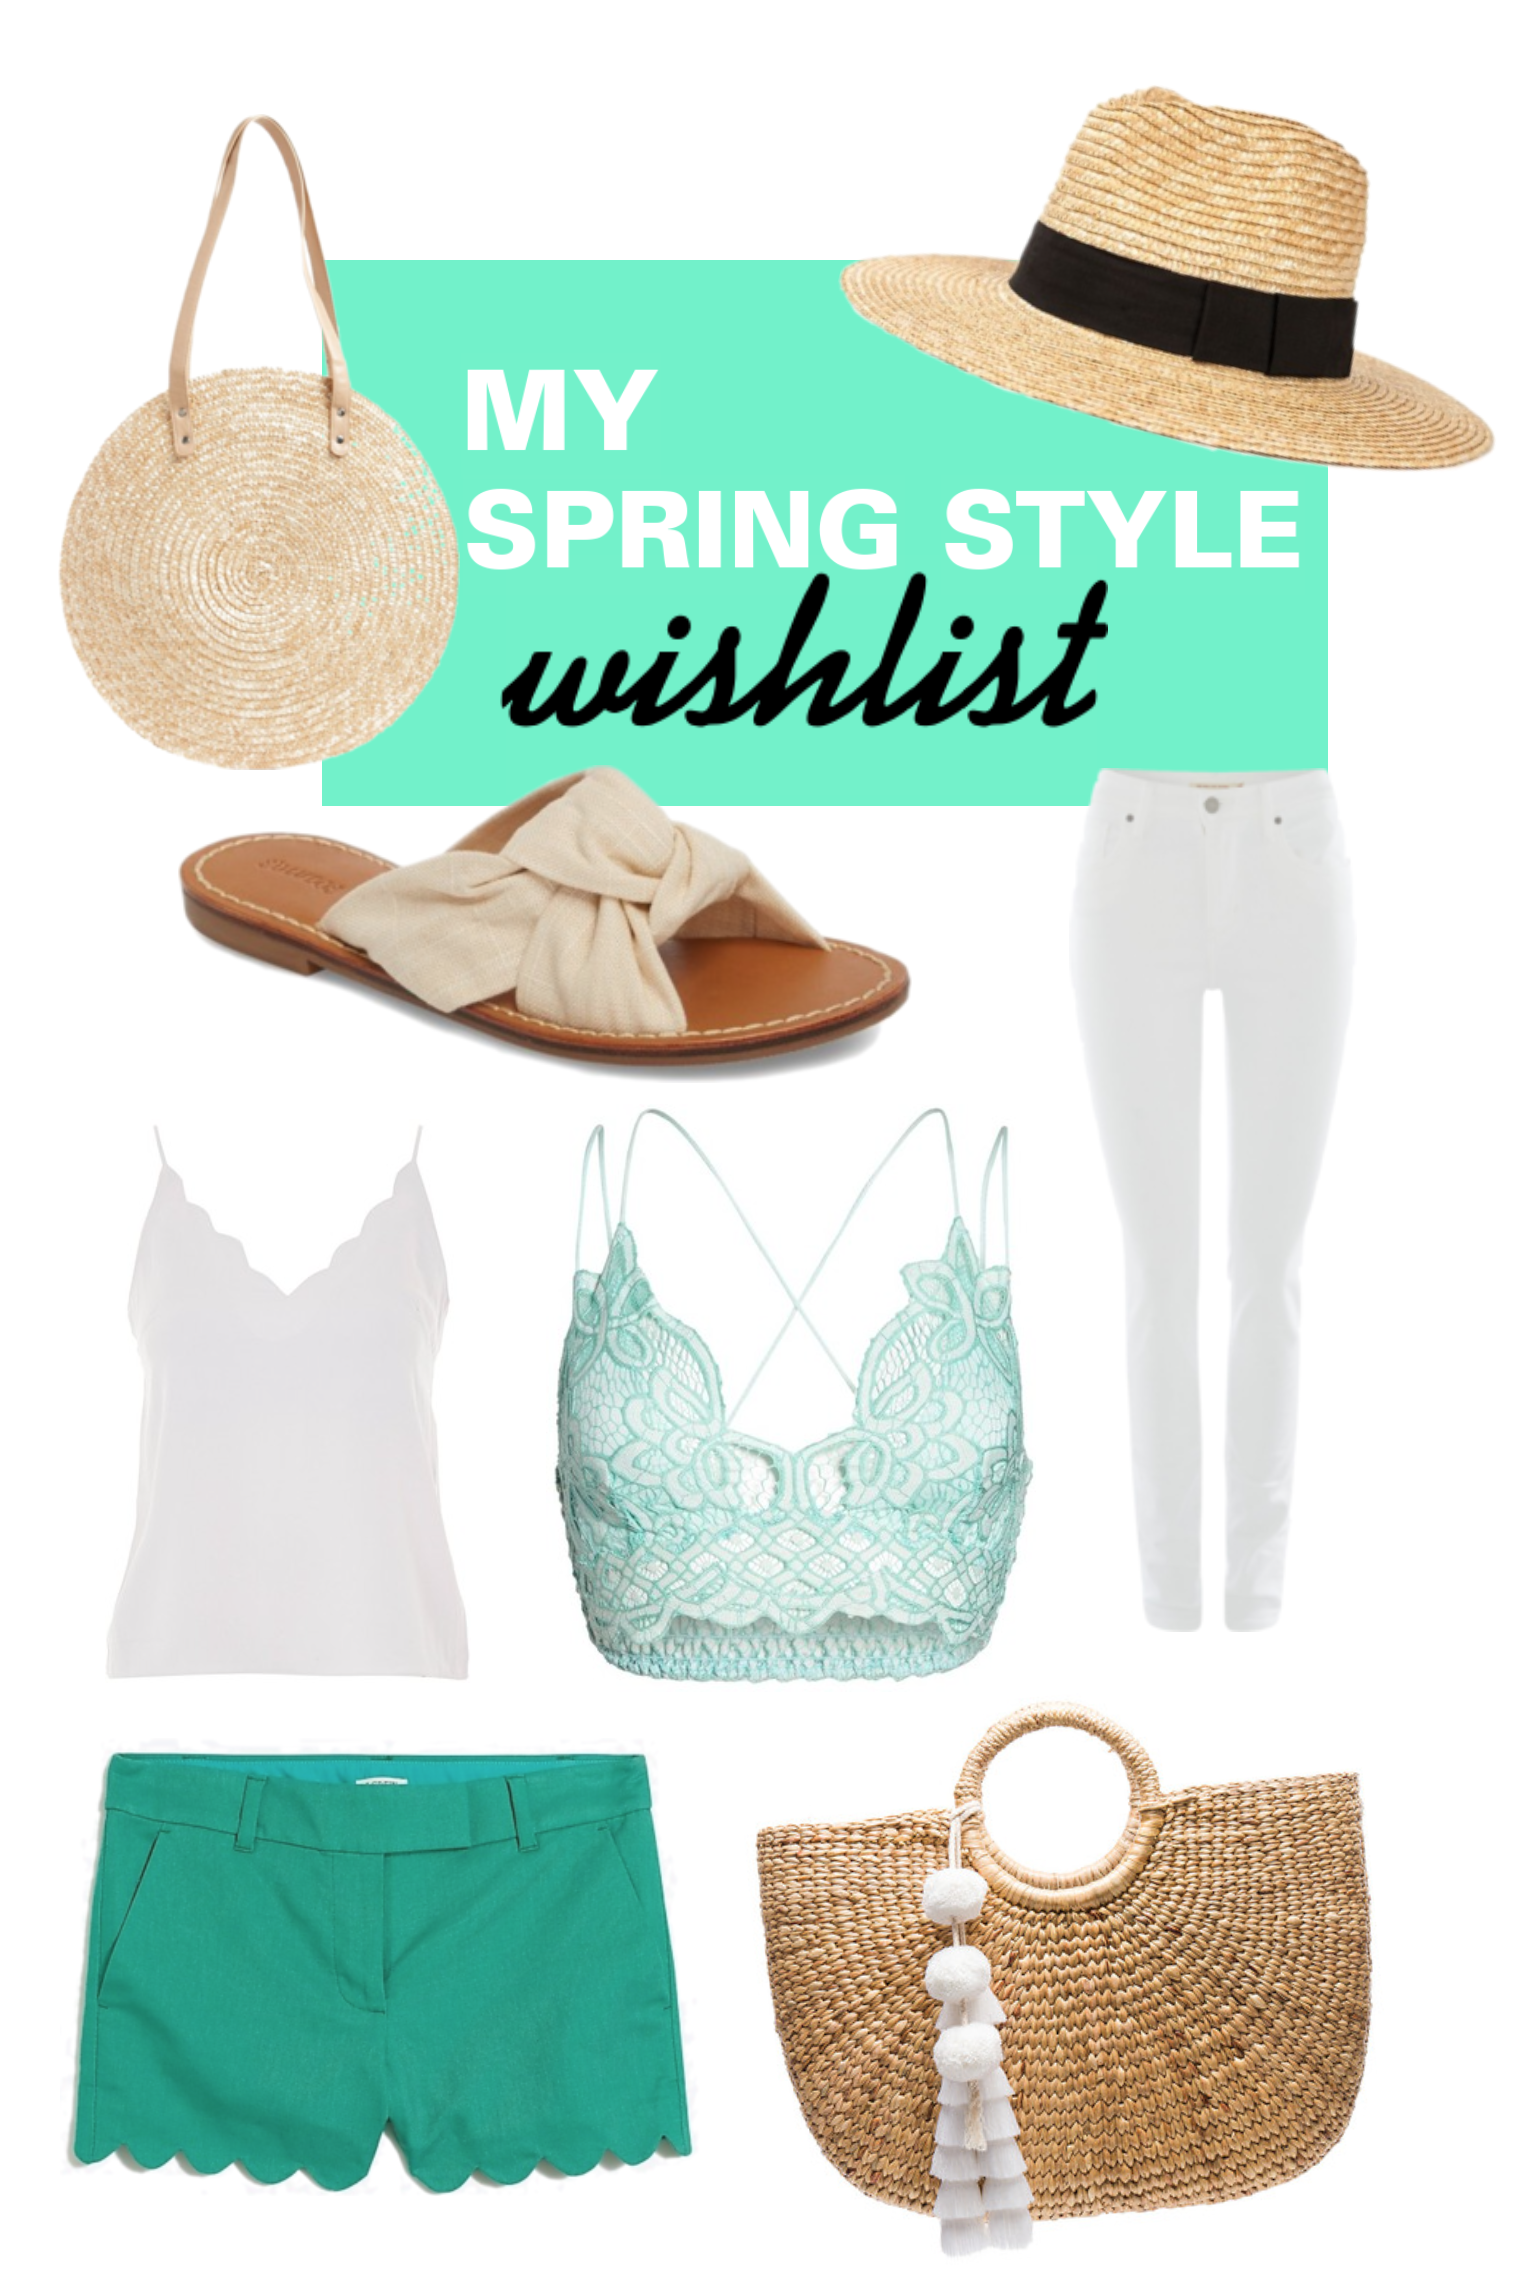 My Spring Style Wishlist - Spring Style - Fashion Roundup For Spring 2018 - Basket Bags - Communikait by Kait Hanson